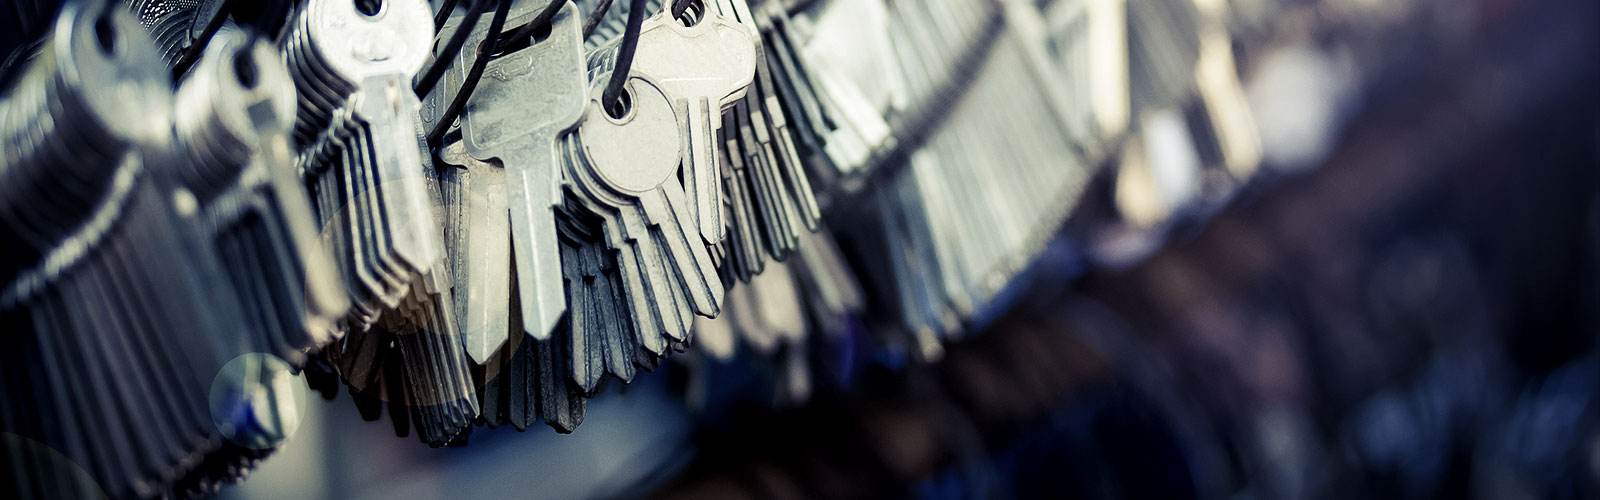 Lakewood: Commercial Lock, Locksmith and Lock and Key